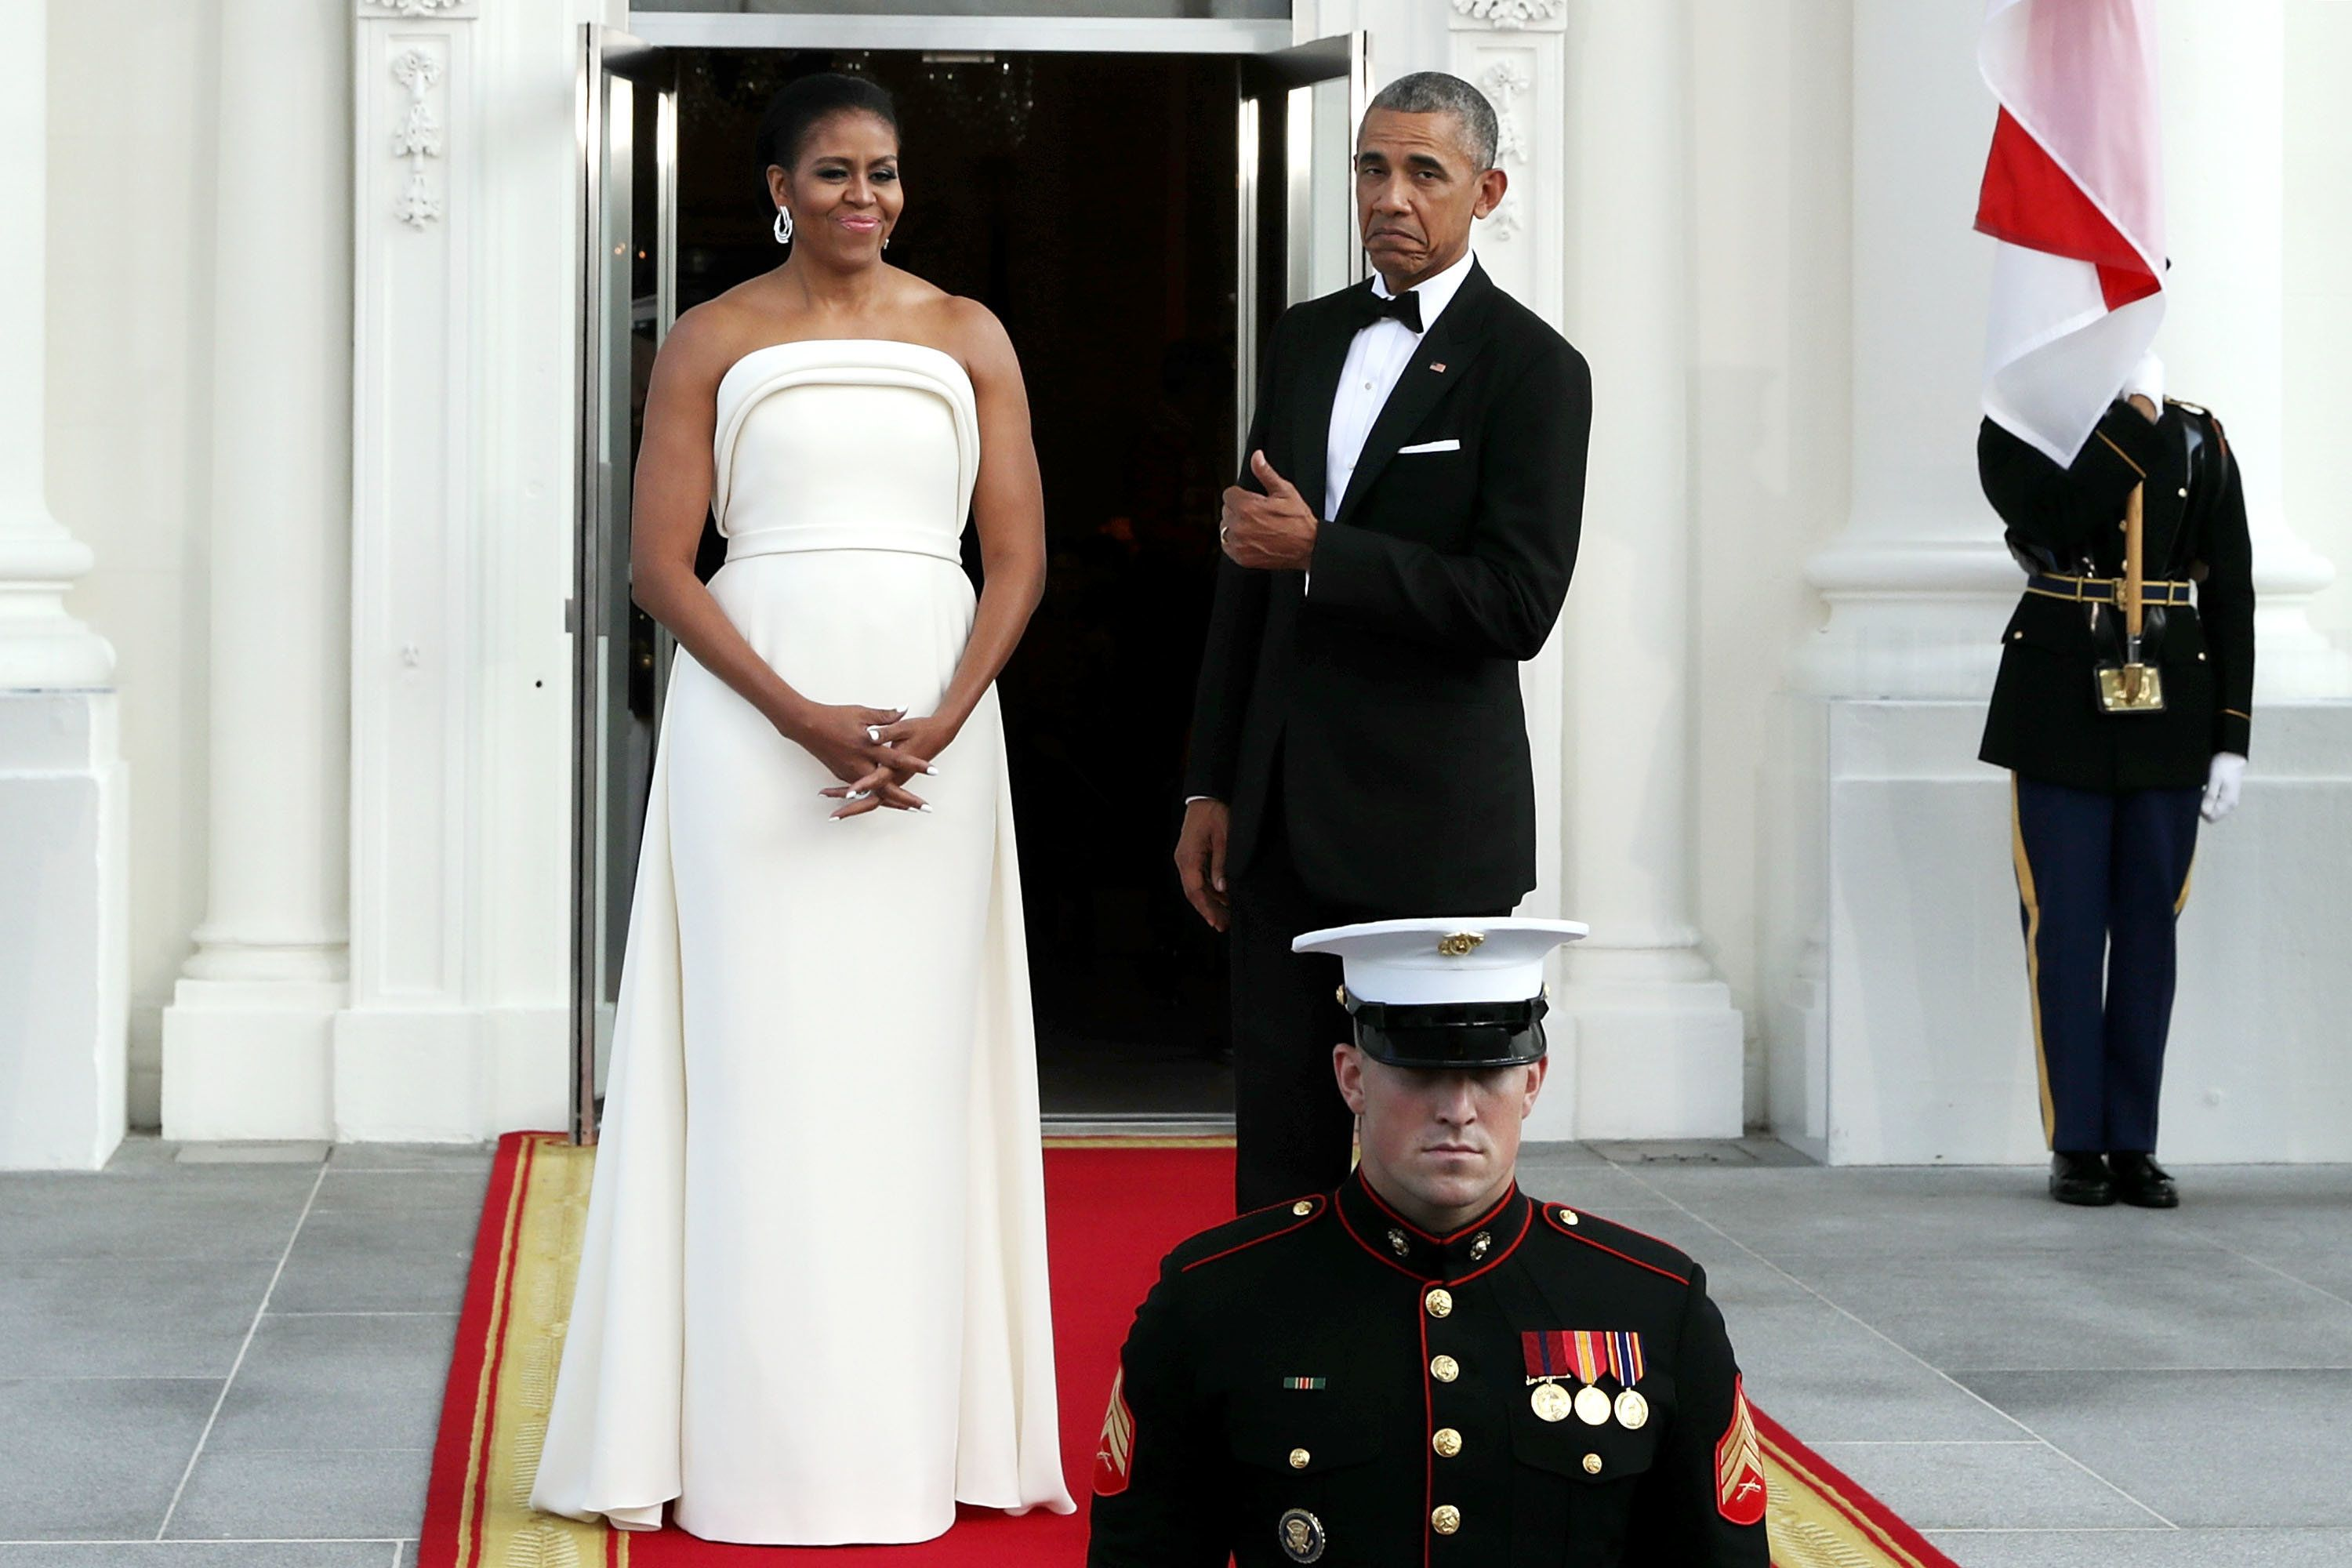 WASHINGTON, DC - AUGUST 02:  U.S. first lady Michelle Obama and U.S. President Barack Obama wait for the arrival of  Prime Minister Lee Hsien Loong of Singapore and his wife Ho Ching on the North Portico of the White House August 2, 2016 in Washington, DC. The Obamas are hosting the prime minister and his wife for an official state dinner.  (Photo by Chip Somodevilla/Getty Images)